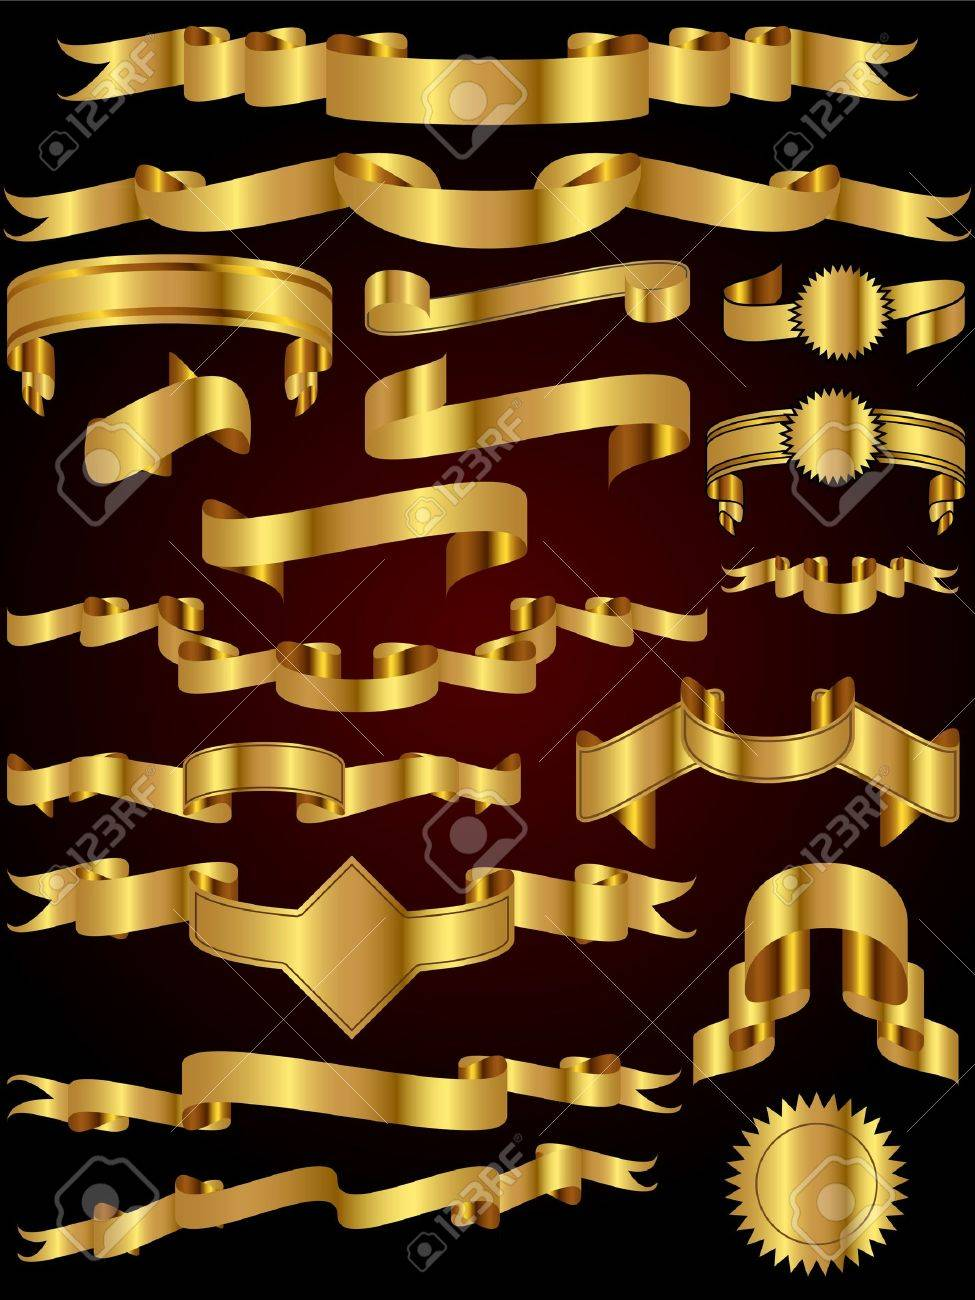 A collection of many gold ribbon vector illustrations perfect for use as design elements - 9717784